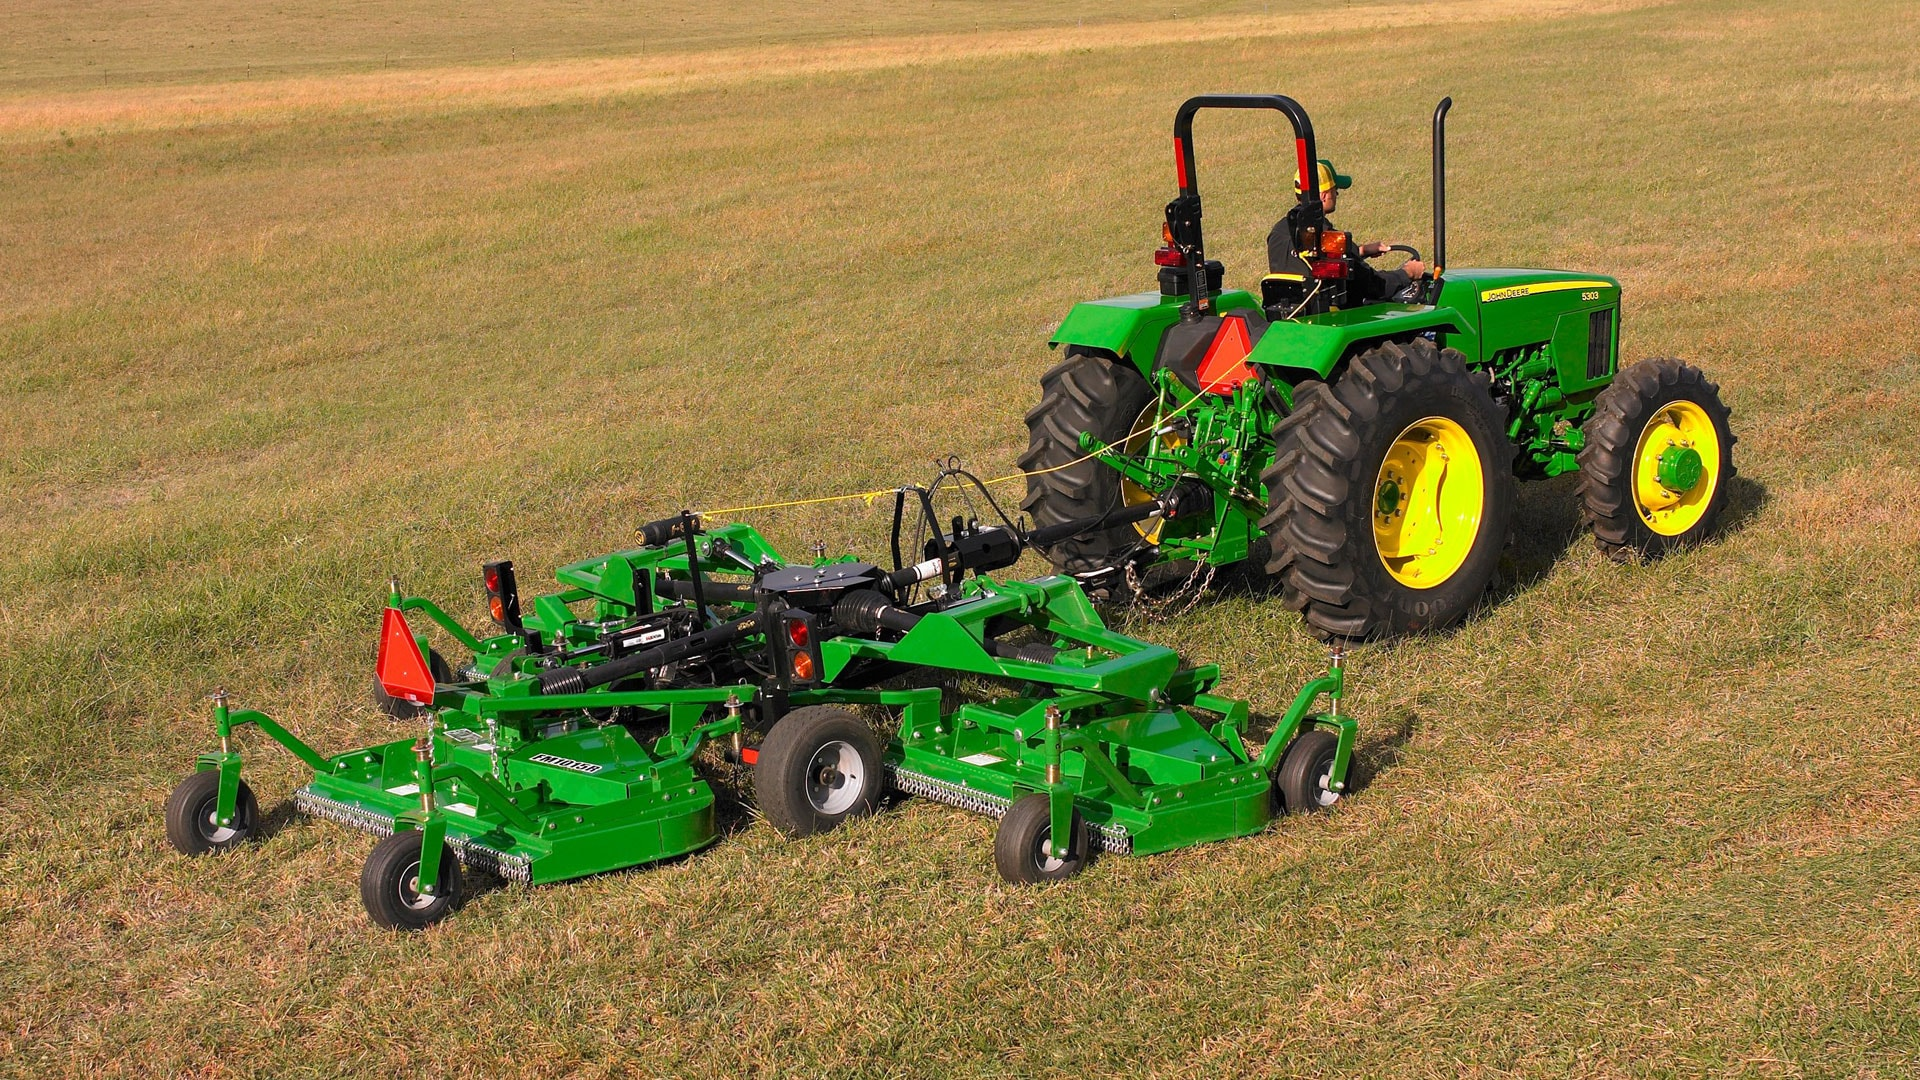 grooming mower attached to tractor in a field